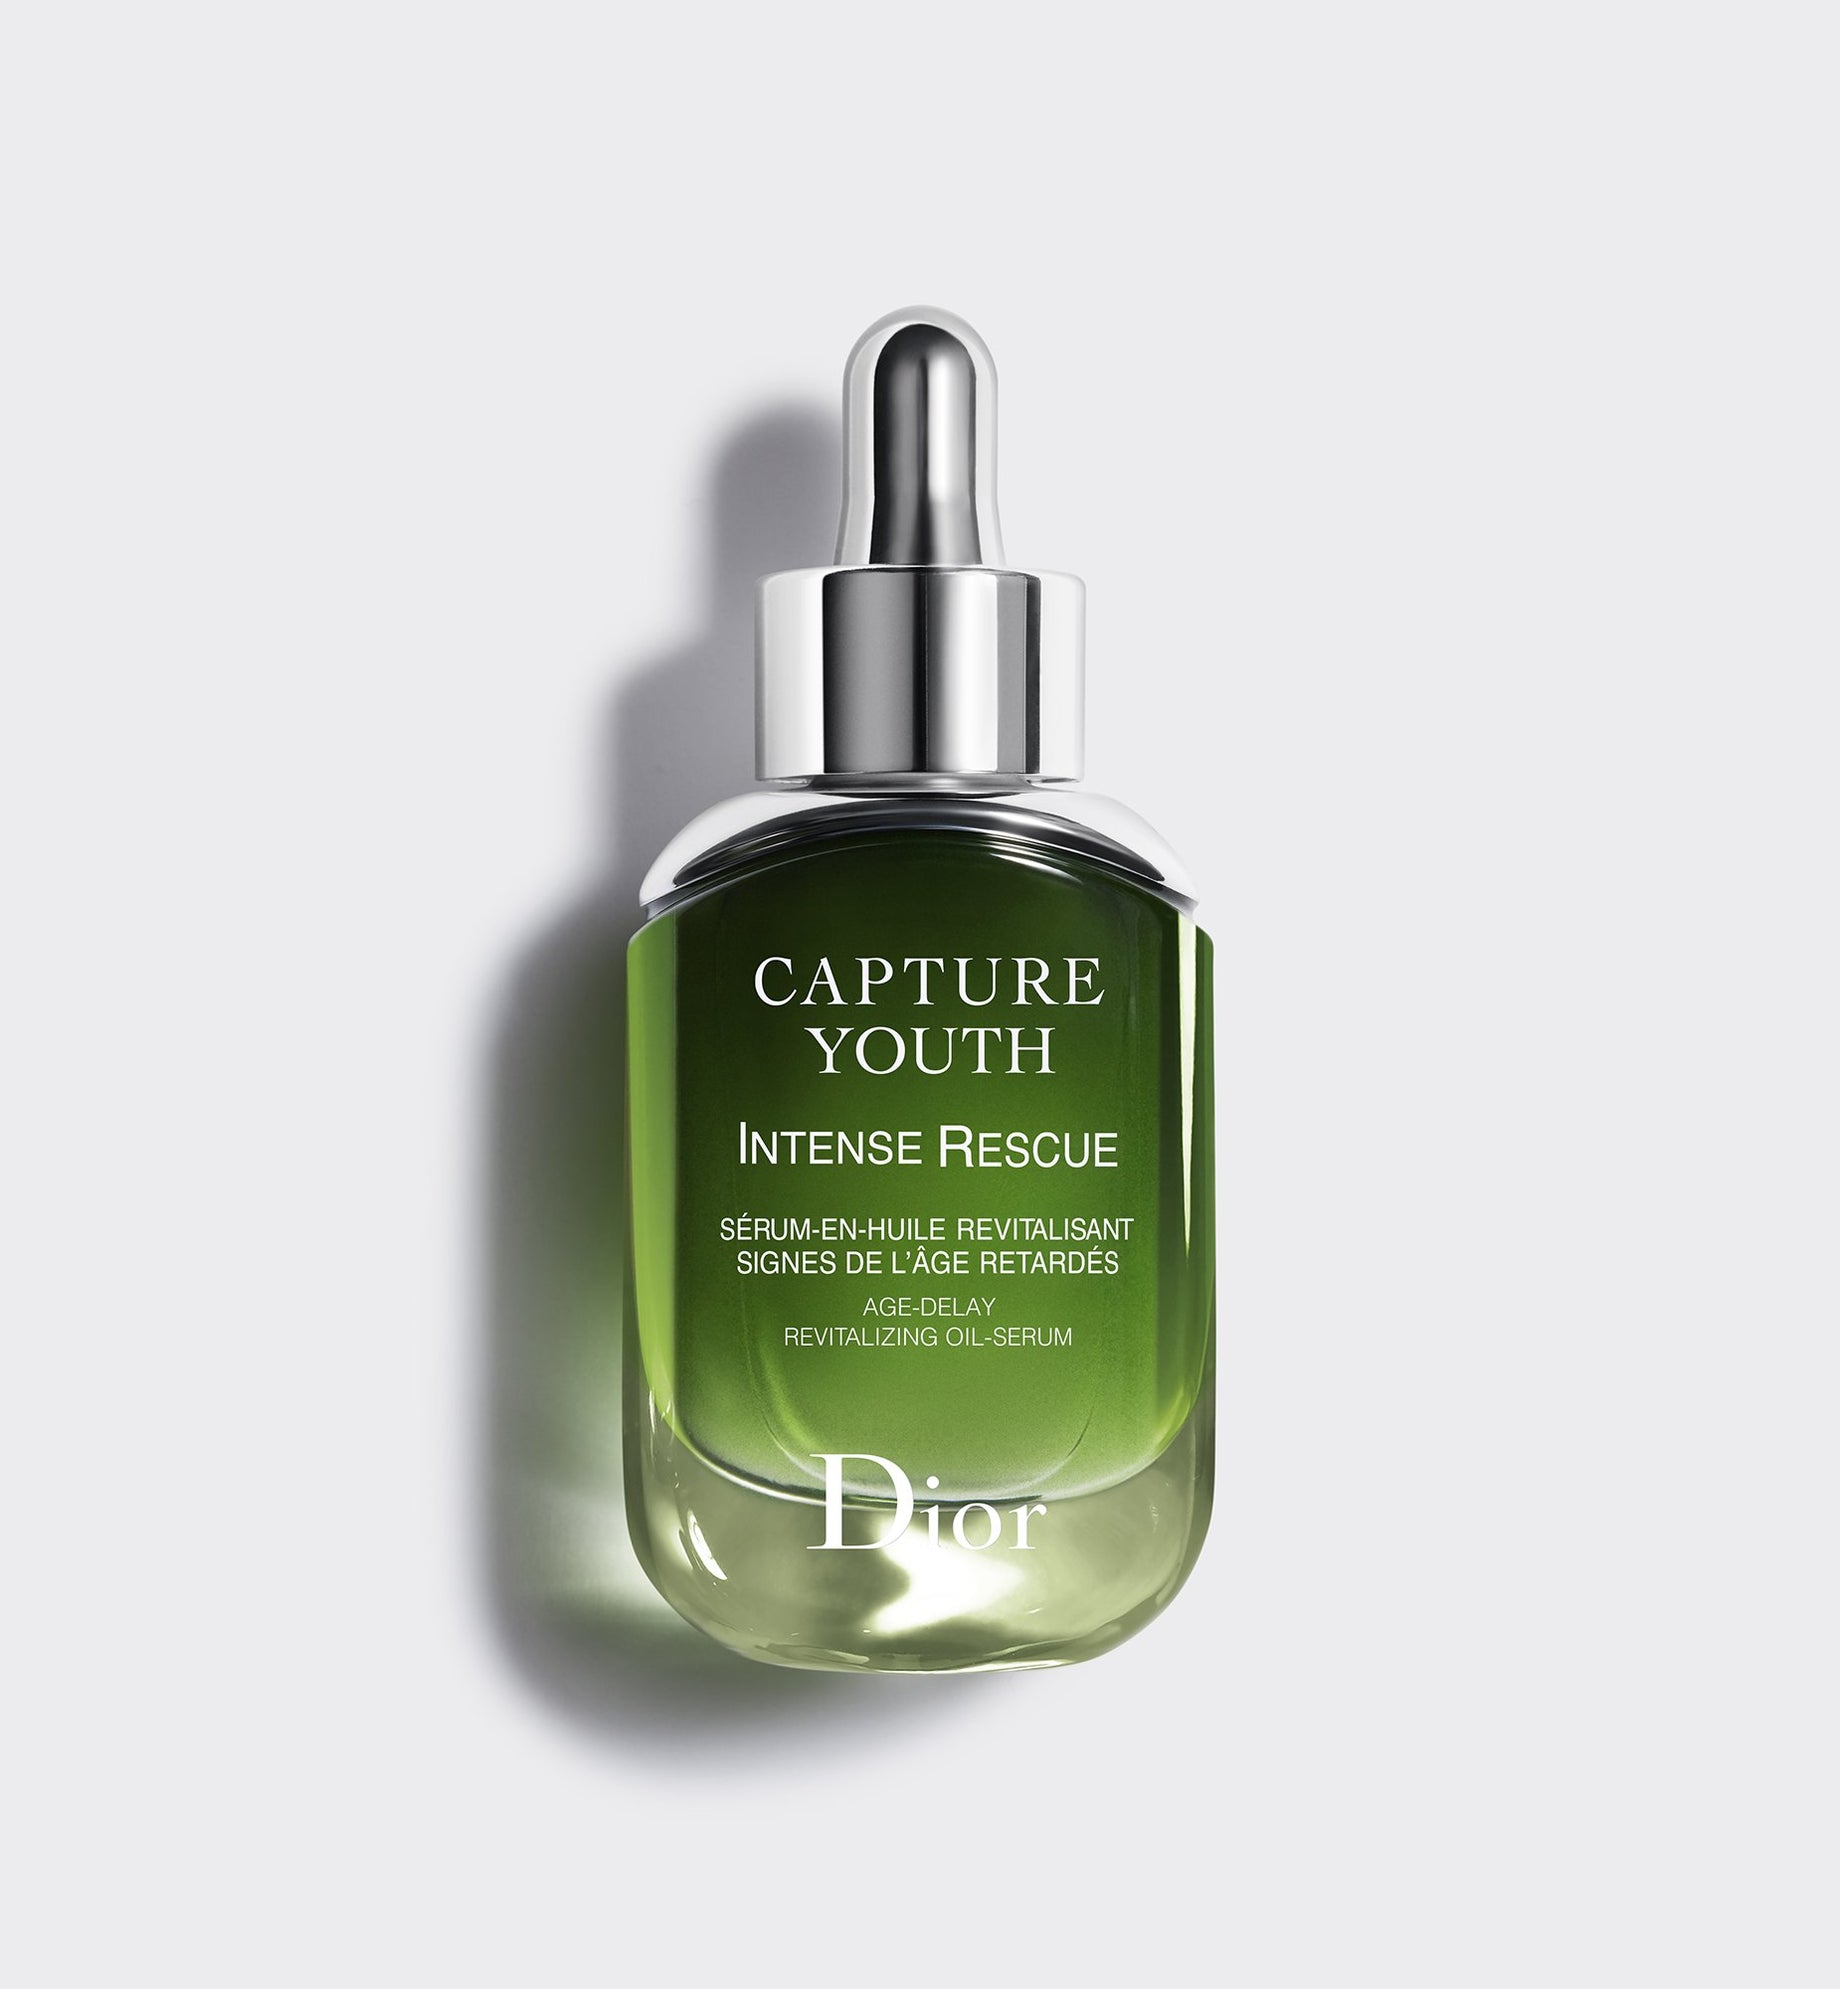 CAPTURE YOUTH INTENSE RESCUE AGE-DELAY REVITALIZING OIL-SERUM